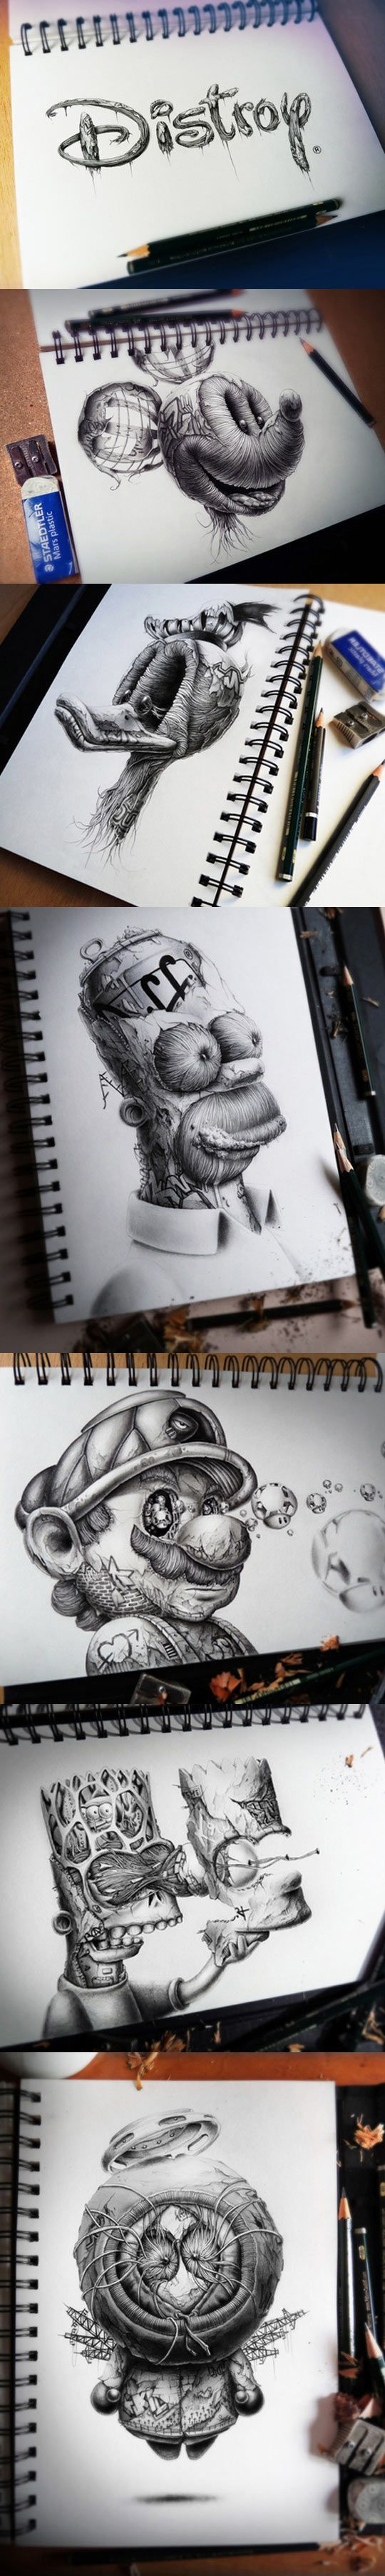 Distroy by PEZ…CReepy but unbelieveably talented: